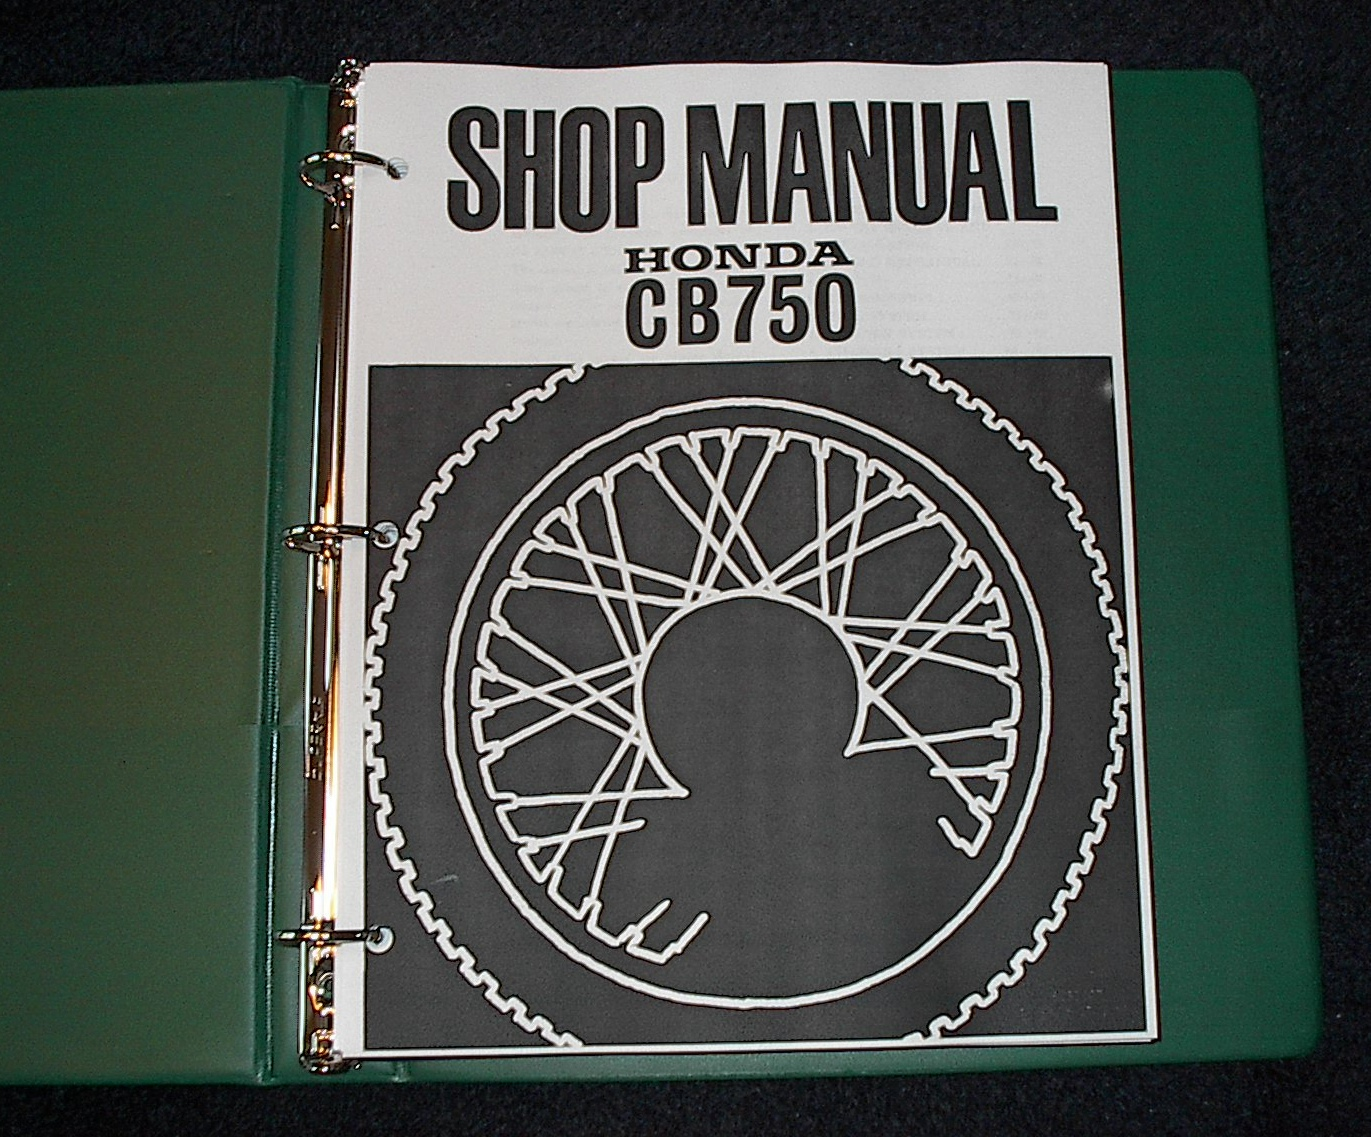 Honda CB750 -- (1969-1976) -- Shop Manual #HC623000715007606 NOTE: This  manual comes in a generic green binder. 252 pages.